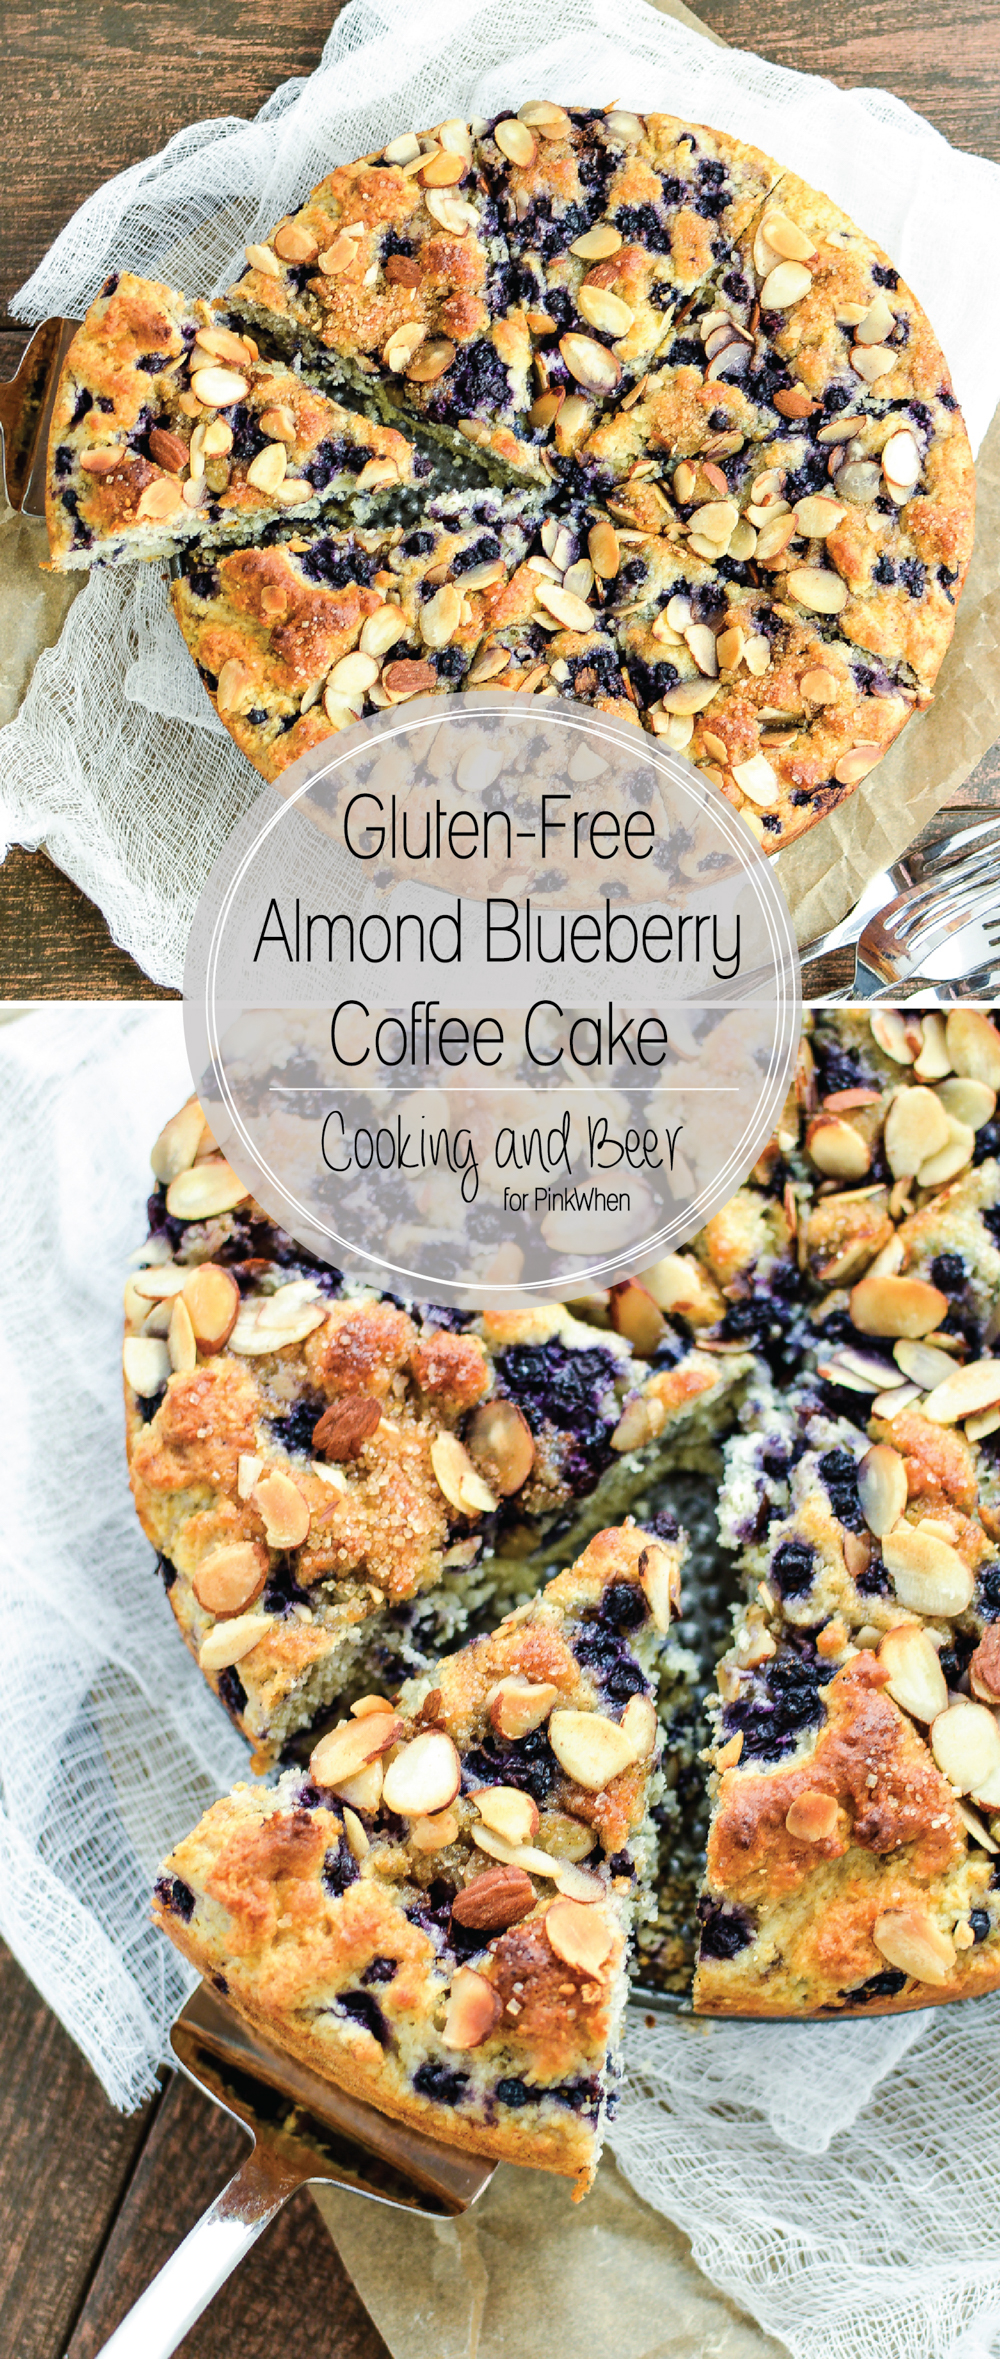 Gluten Free Almond Blueberry Coffee Cake is the perfect breakfast treat to serve with your morning cup of coffee!